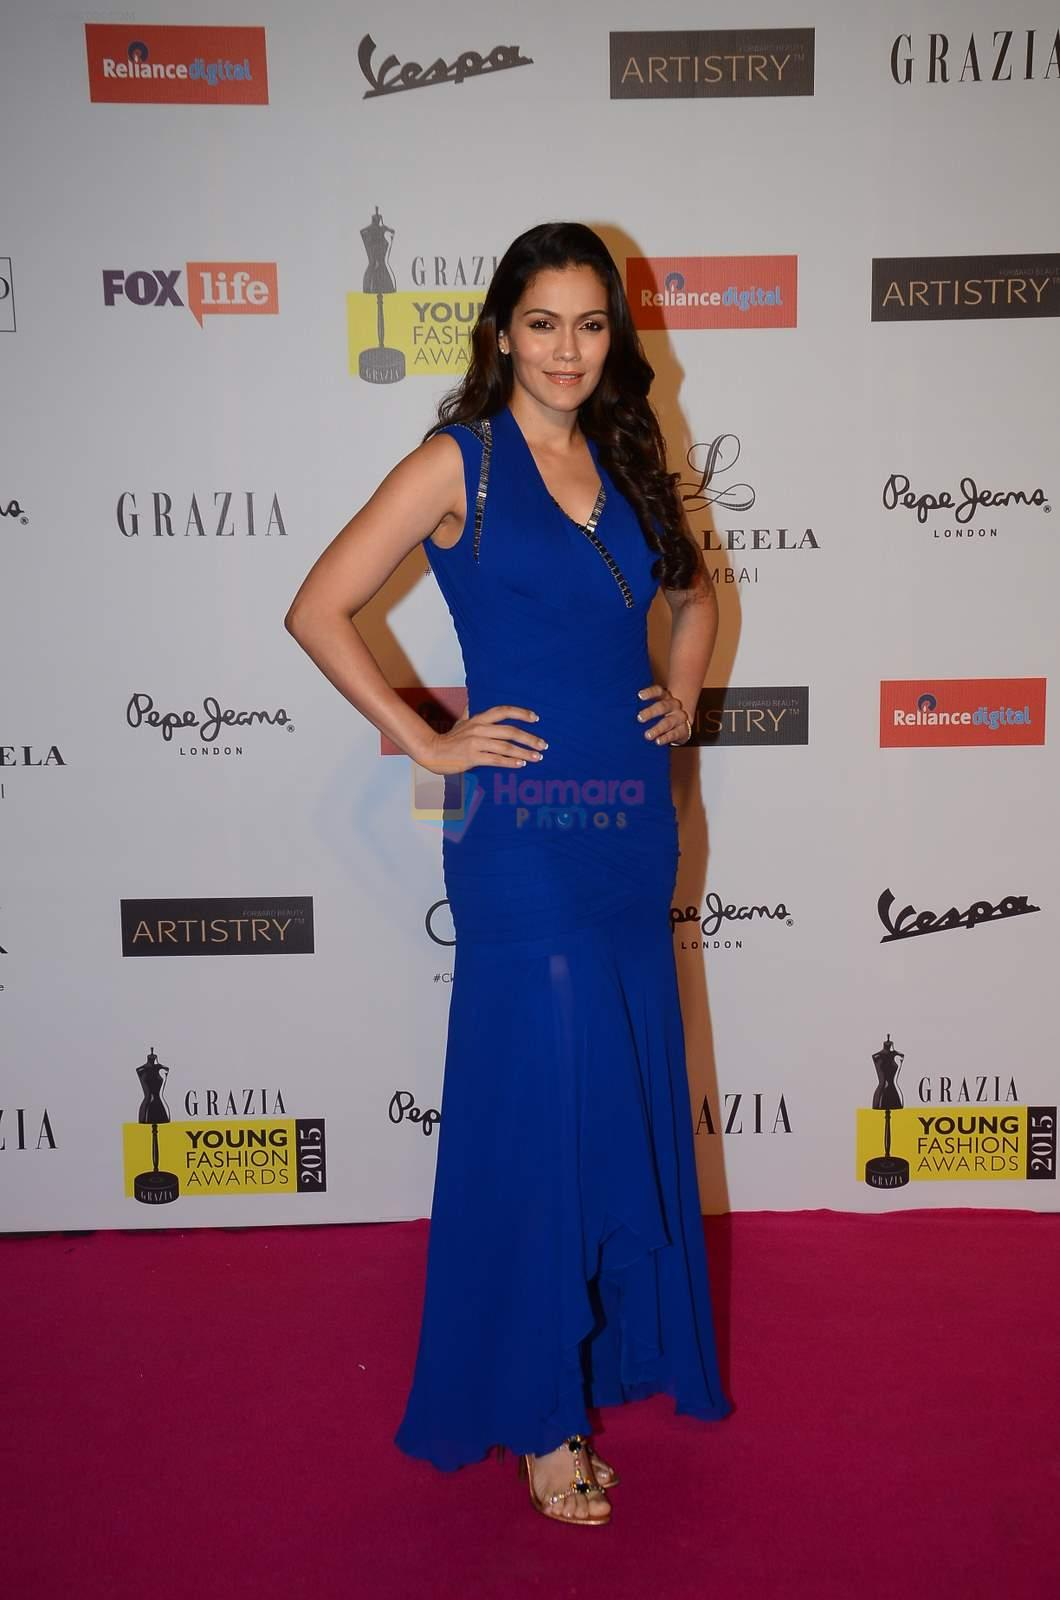 Waluscha De Sousa at Grazia young fashion awards red carpet in Leela Hotel on 15th April 2015